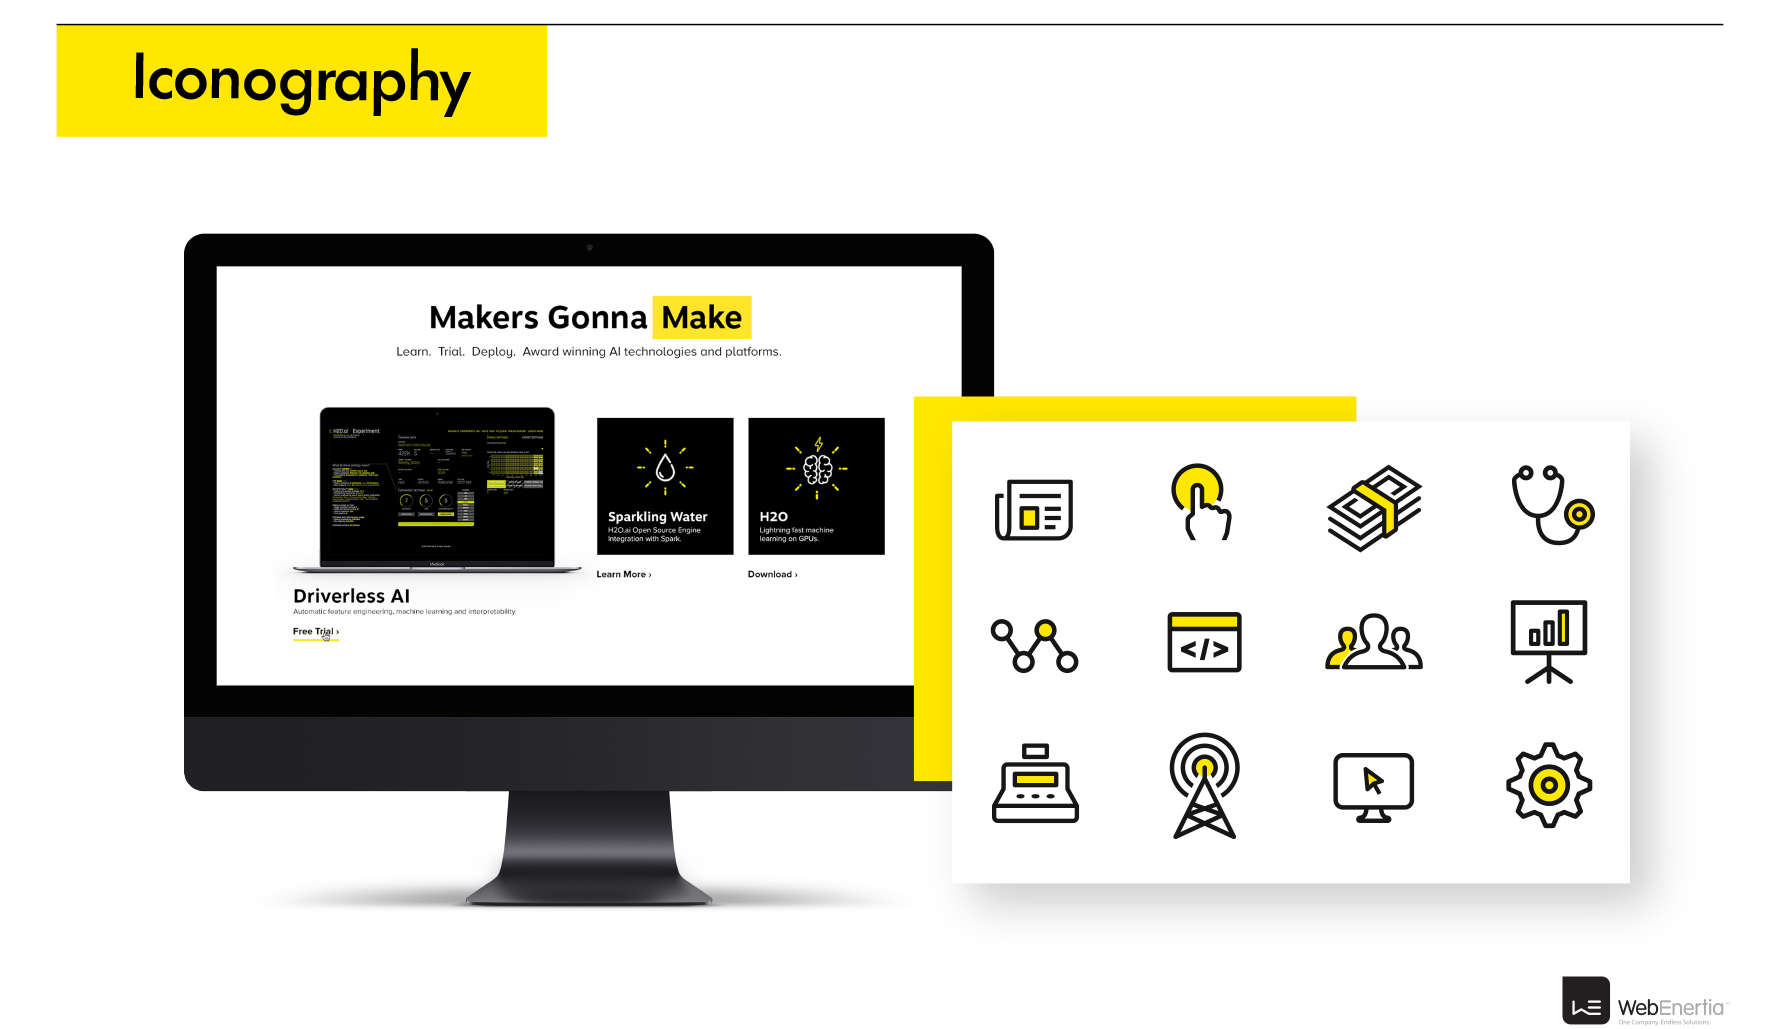 H2O.ai Brand Update & Guidelines iconography black and white with yellow accents